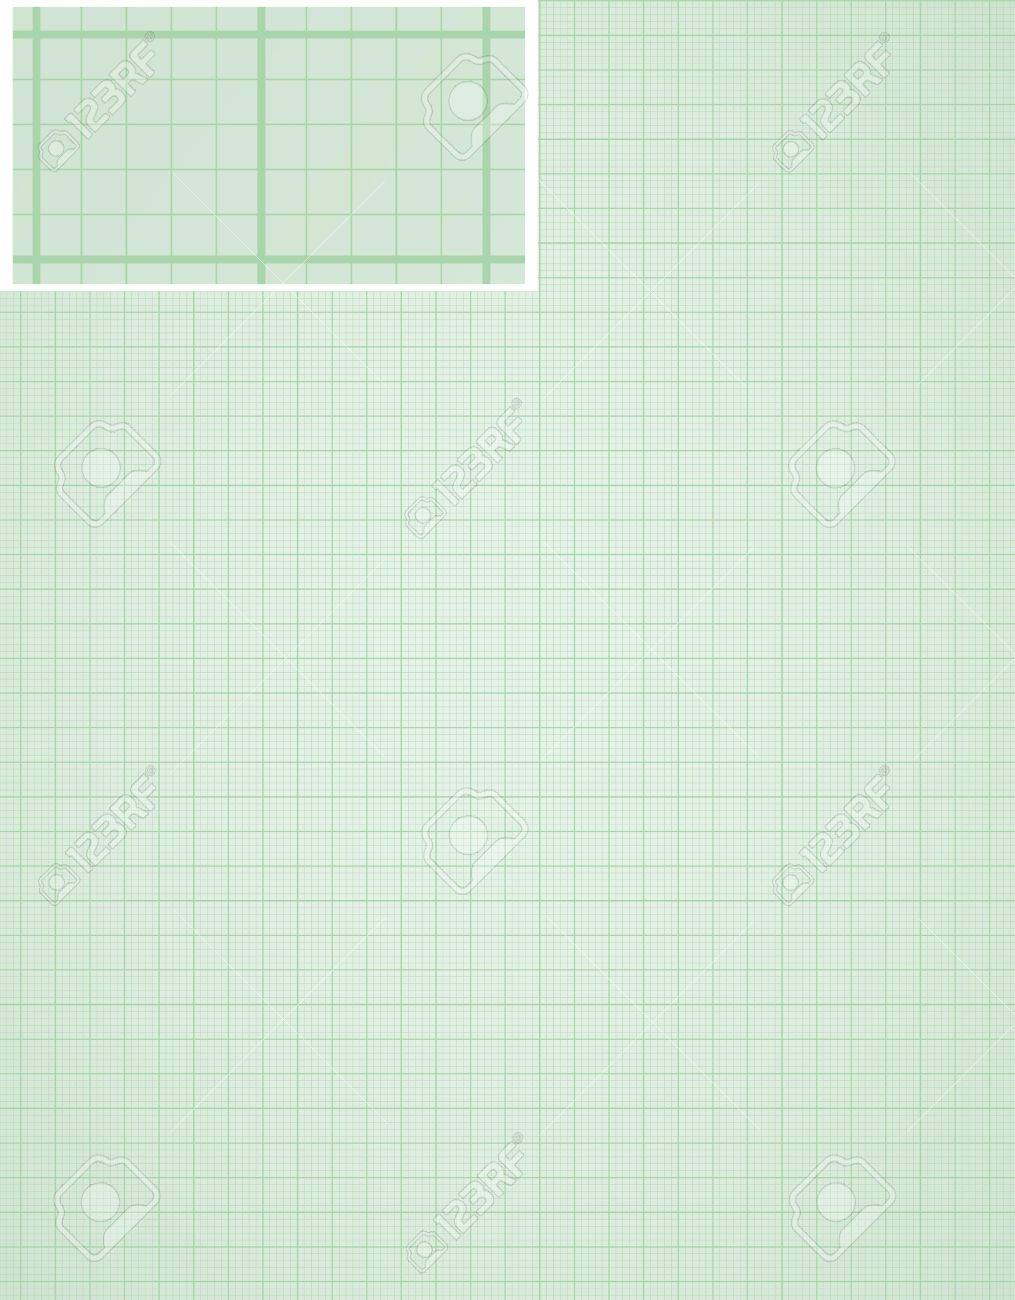 graph paper background with many small squares royalty free cliparts